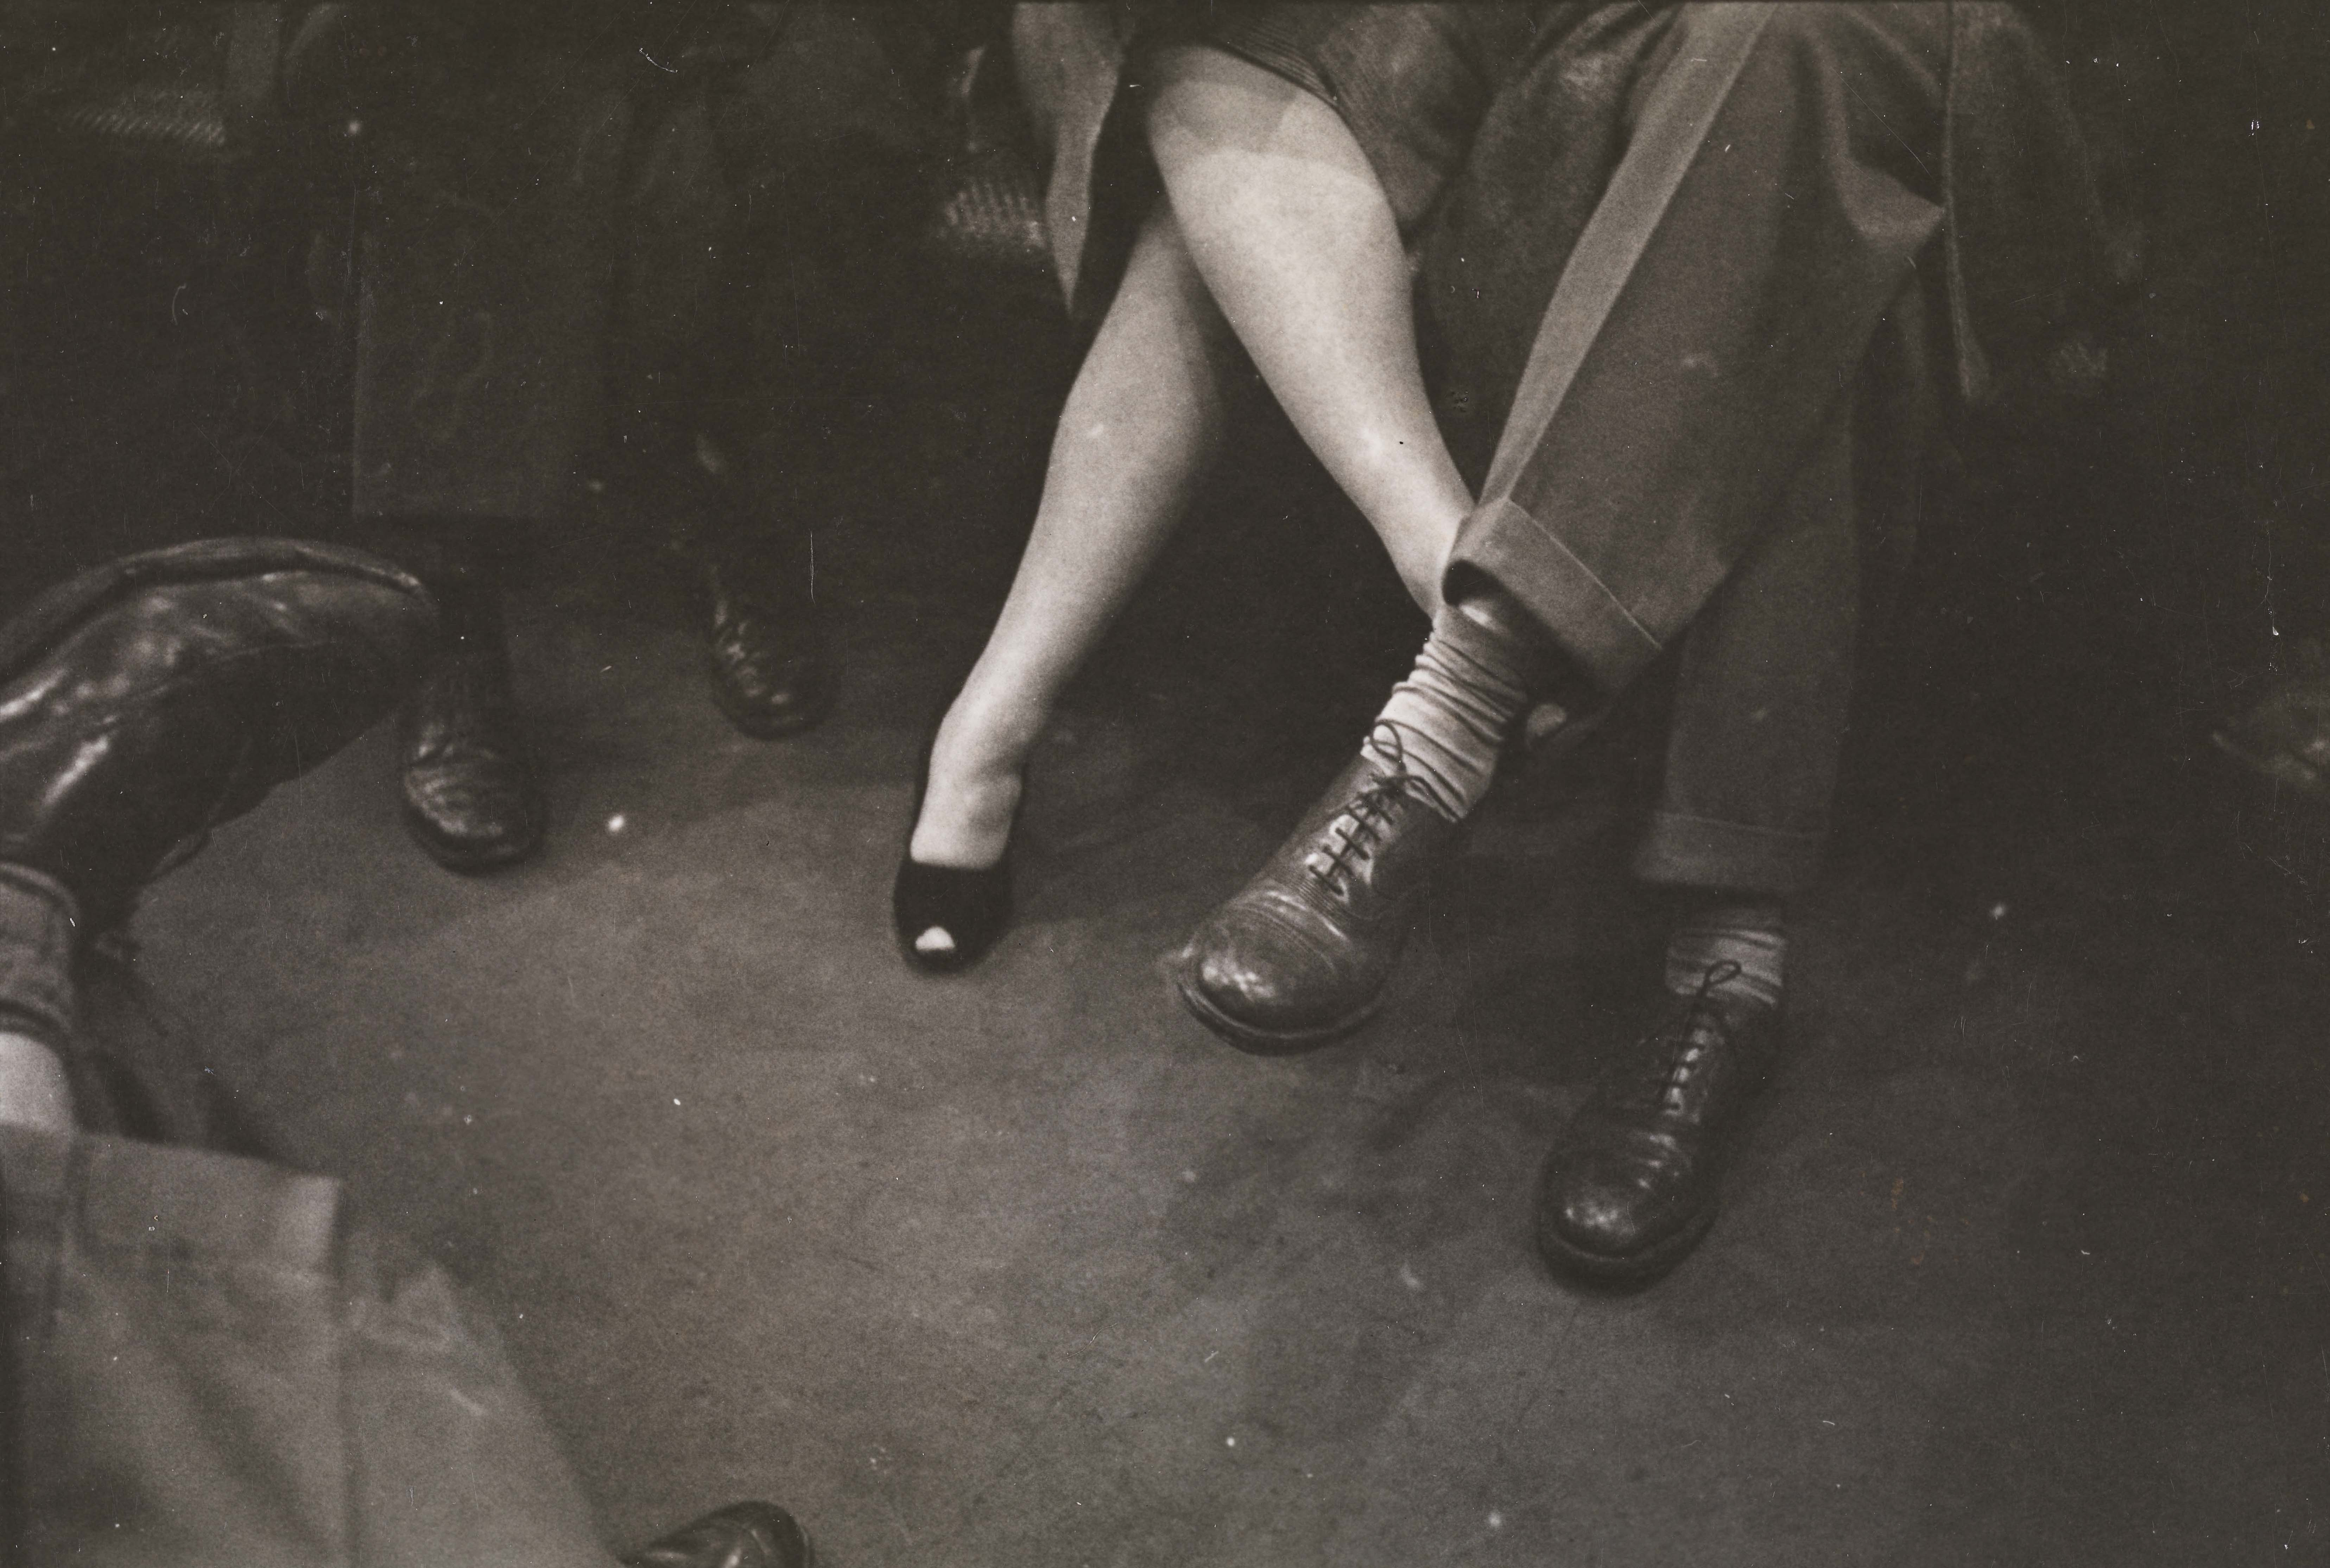 Stanley Kubrick. Life and Love on the New York City Subway. Couple playing footsies on a subway. 1946. Museum of the City of New York. X2011.4.10292.90E